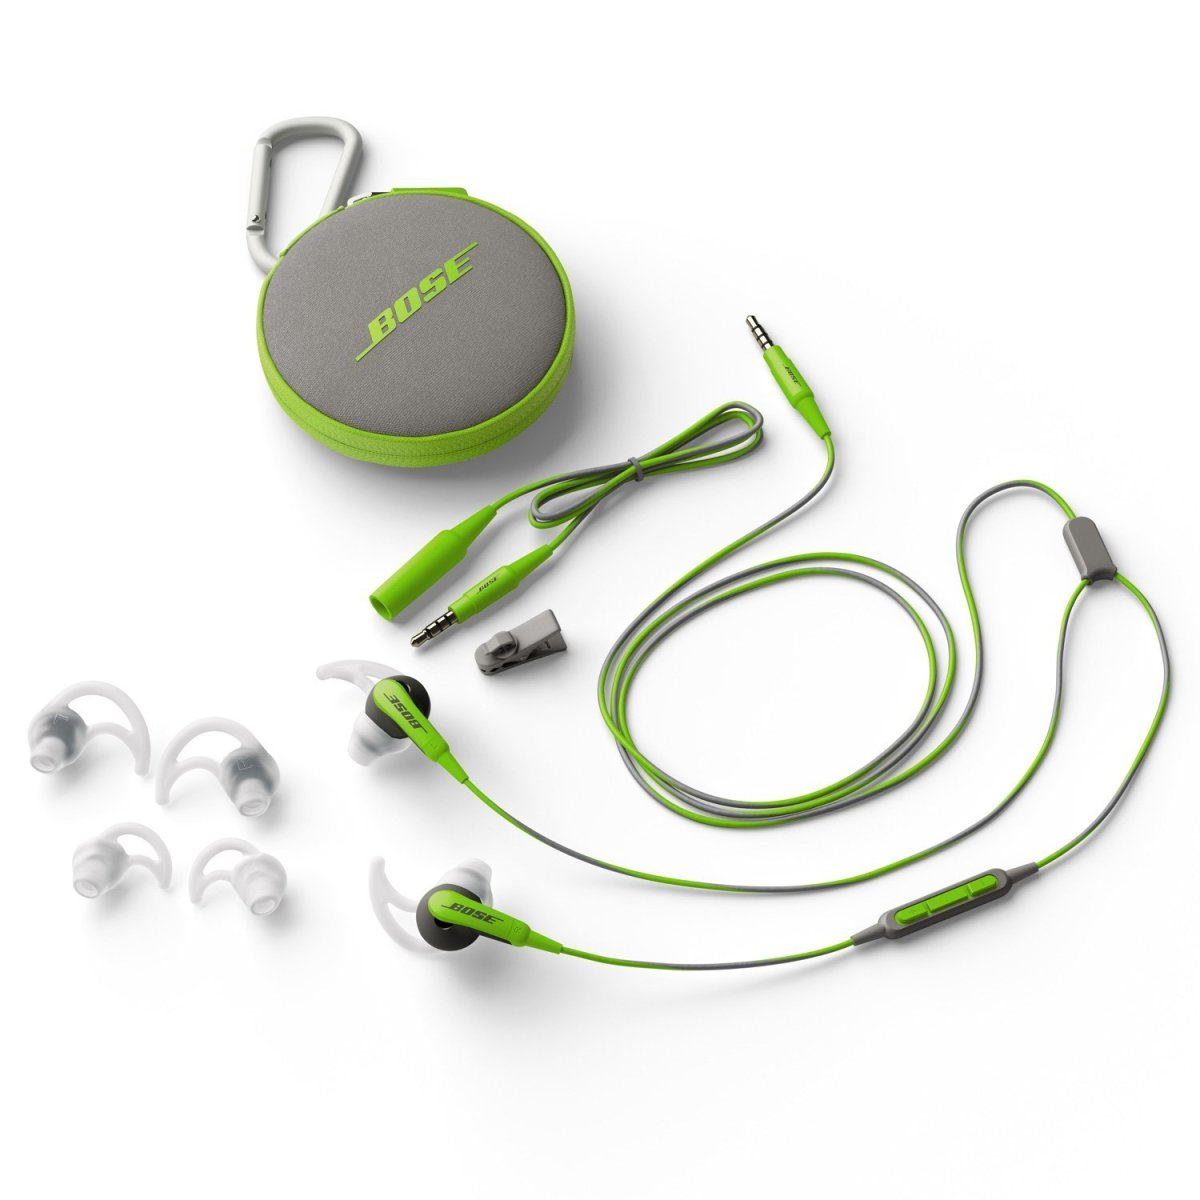 Bose SoundSport. In-ear sports headphones offer a cyclist fantastic audio as you would expect from Bose